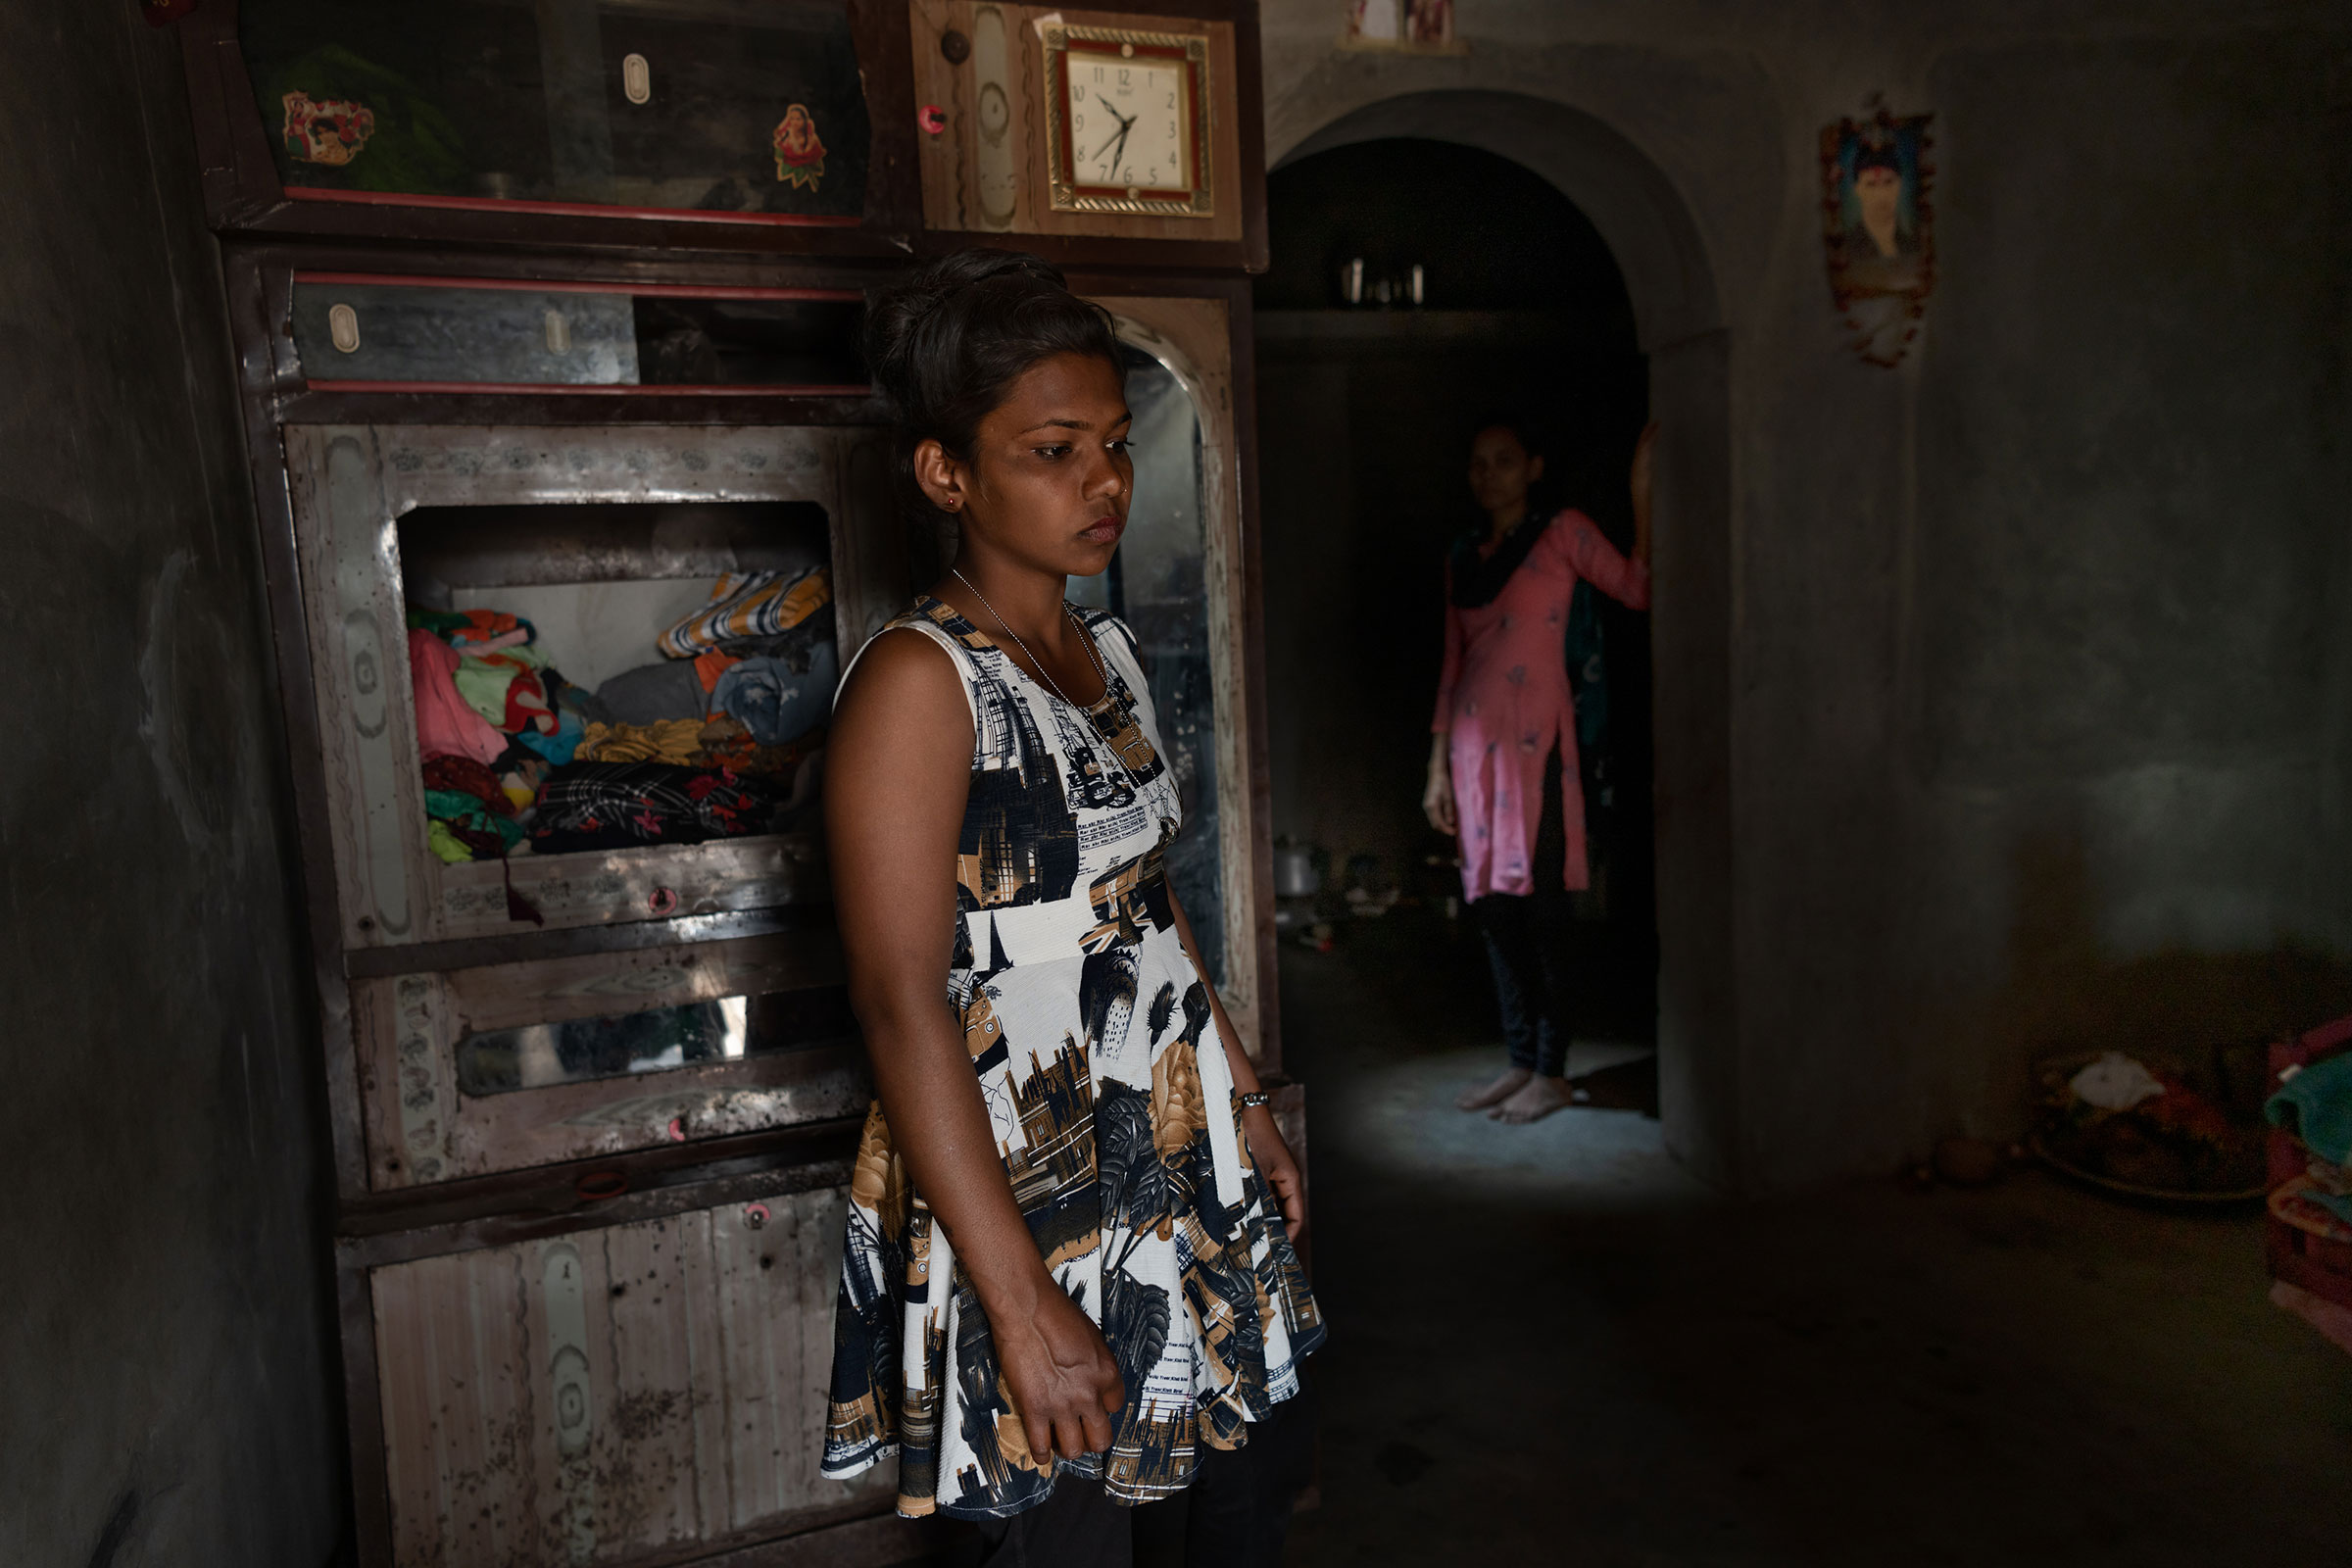 Savitri Vasava, 23, lives in Dakor, Gujarat, and is the mother of a 3-year-old. She plans to become a surrogate after seeing her sister-in-law build a house from the money she made from surrogacy.